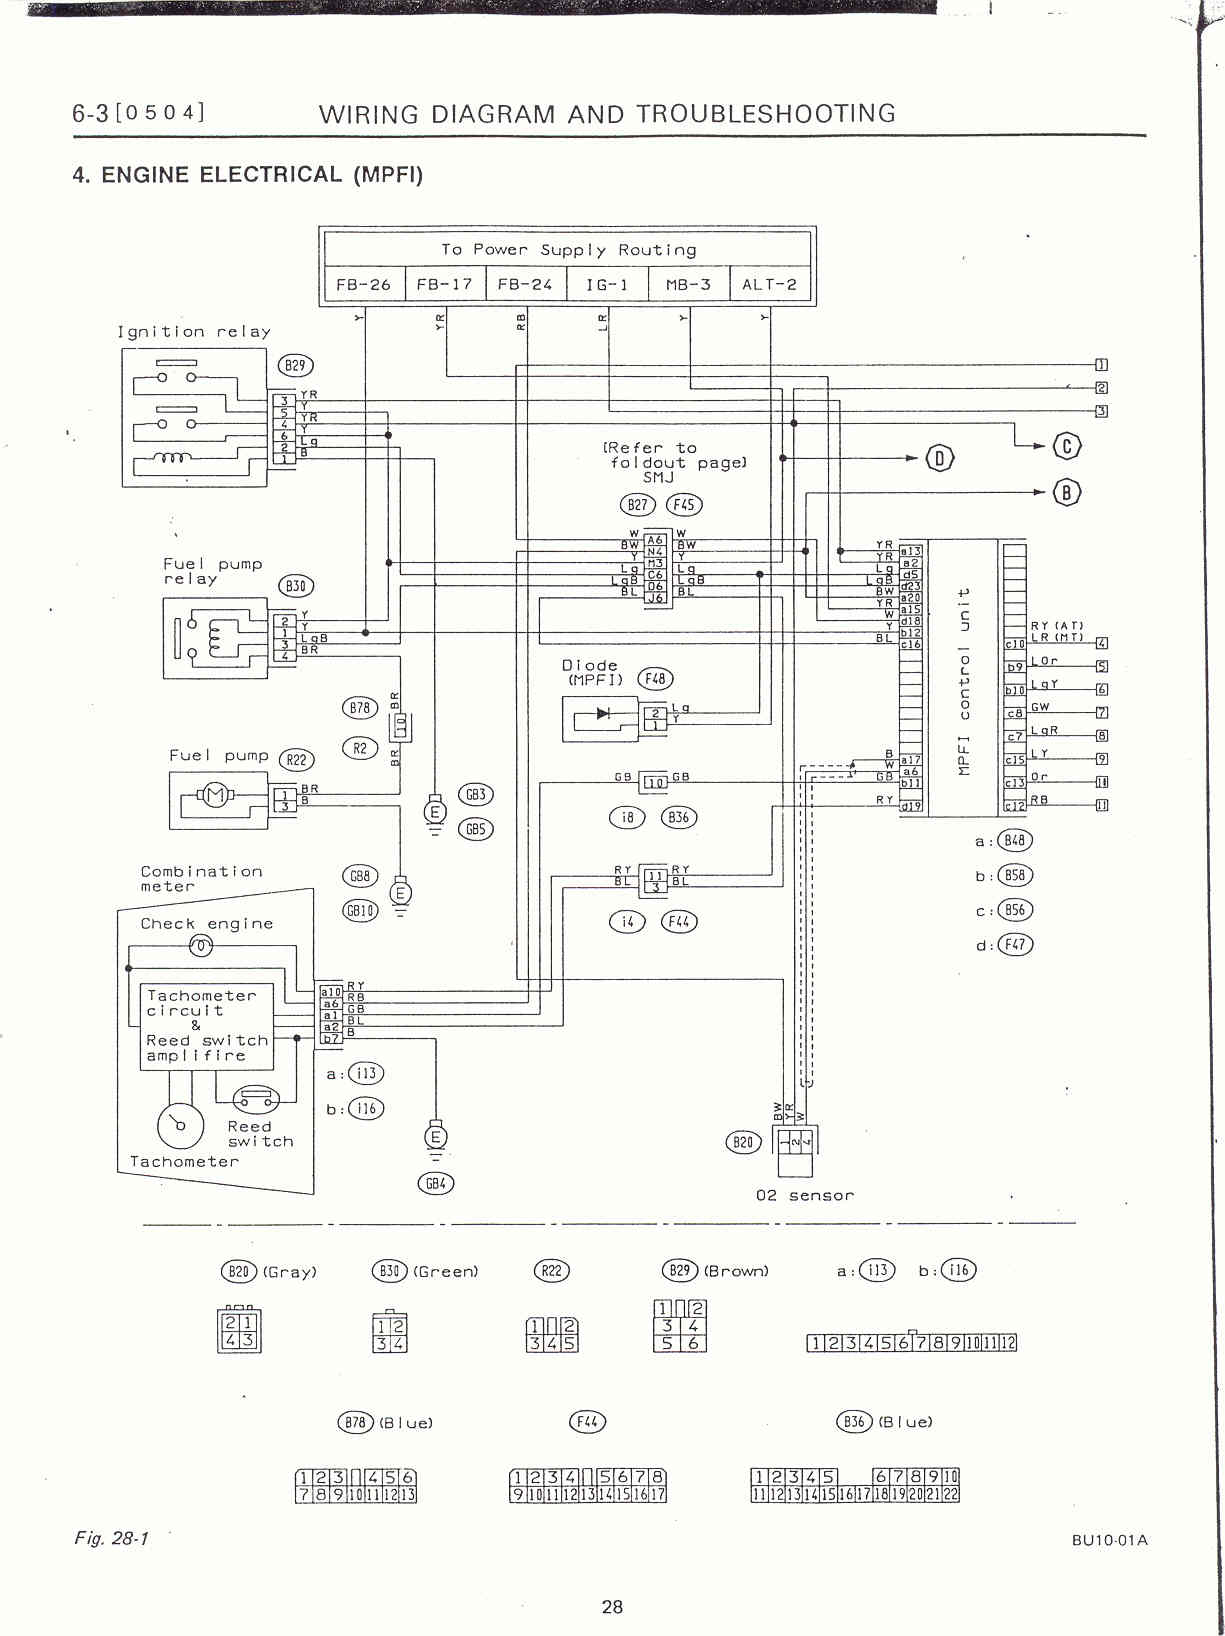 subaru legacy swap electrical info notes engine electrical page 1